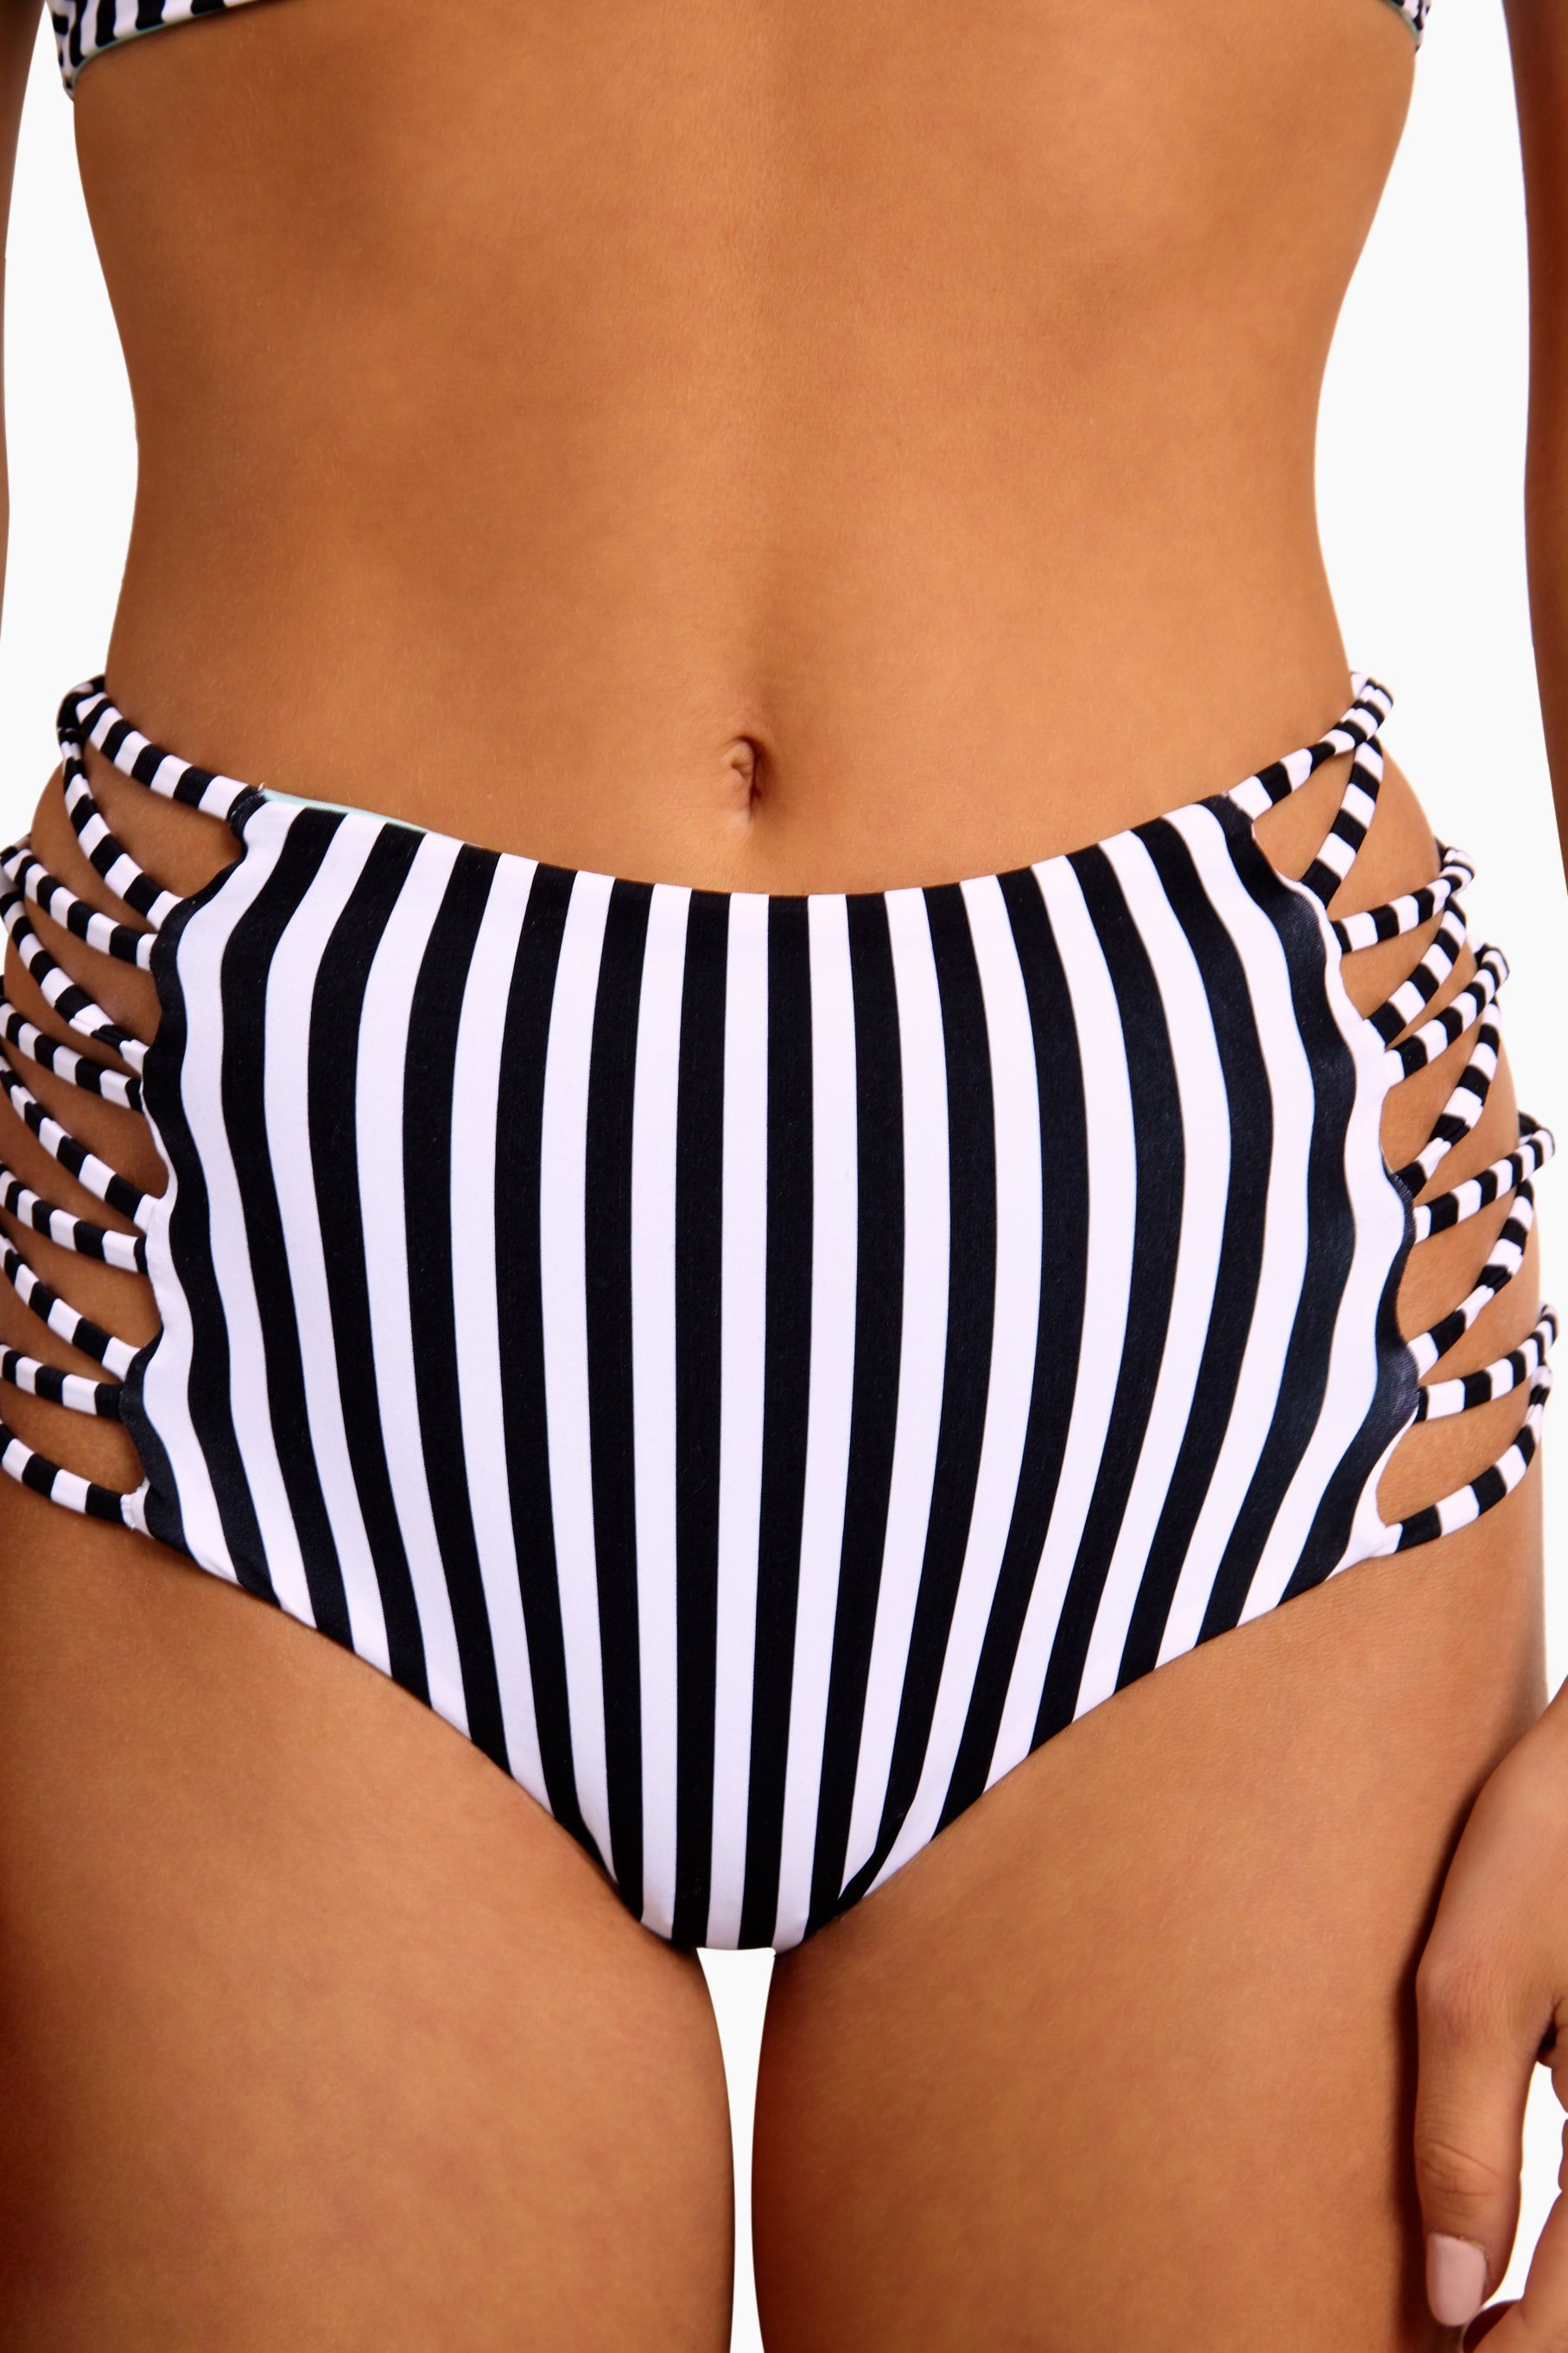 L SPACE Tripp Strappy High Waist Bikini Bottom - Domino Stripe Bikini Bottom | Domino Stripe| L Space Tripp Strappy High Waist Bikini Bottom - Domino Stripe High-waist bikini bottom Interlocking strappy detail along hips Bitsy coverage Close Up View